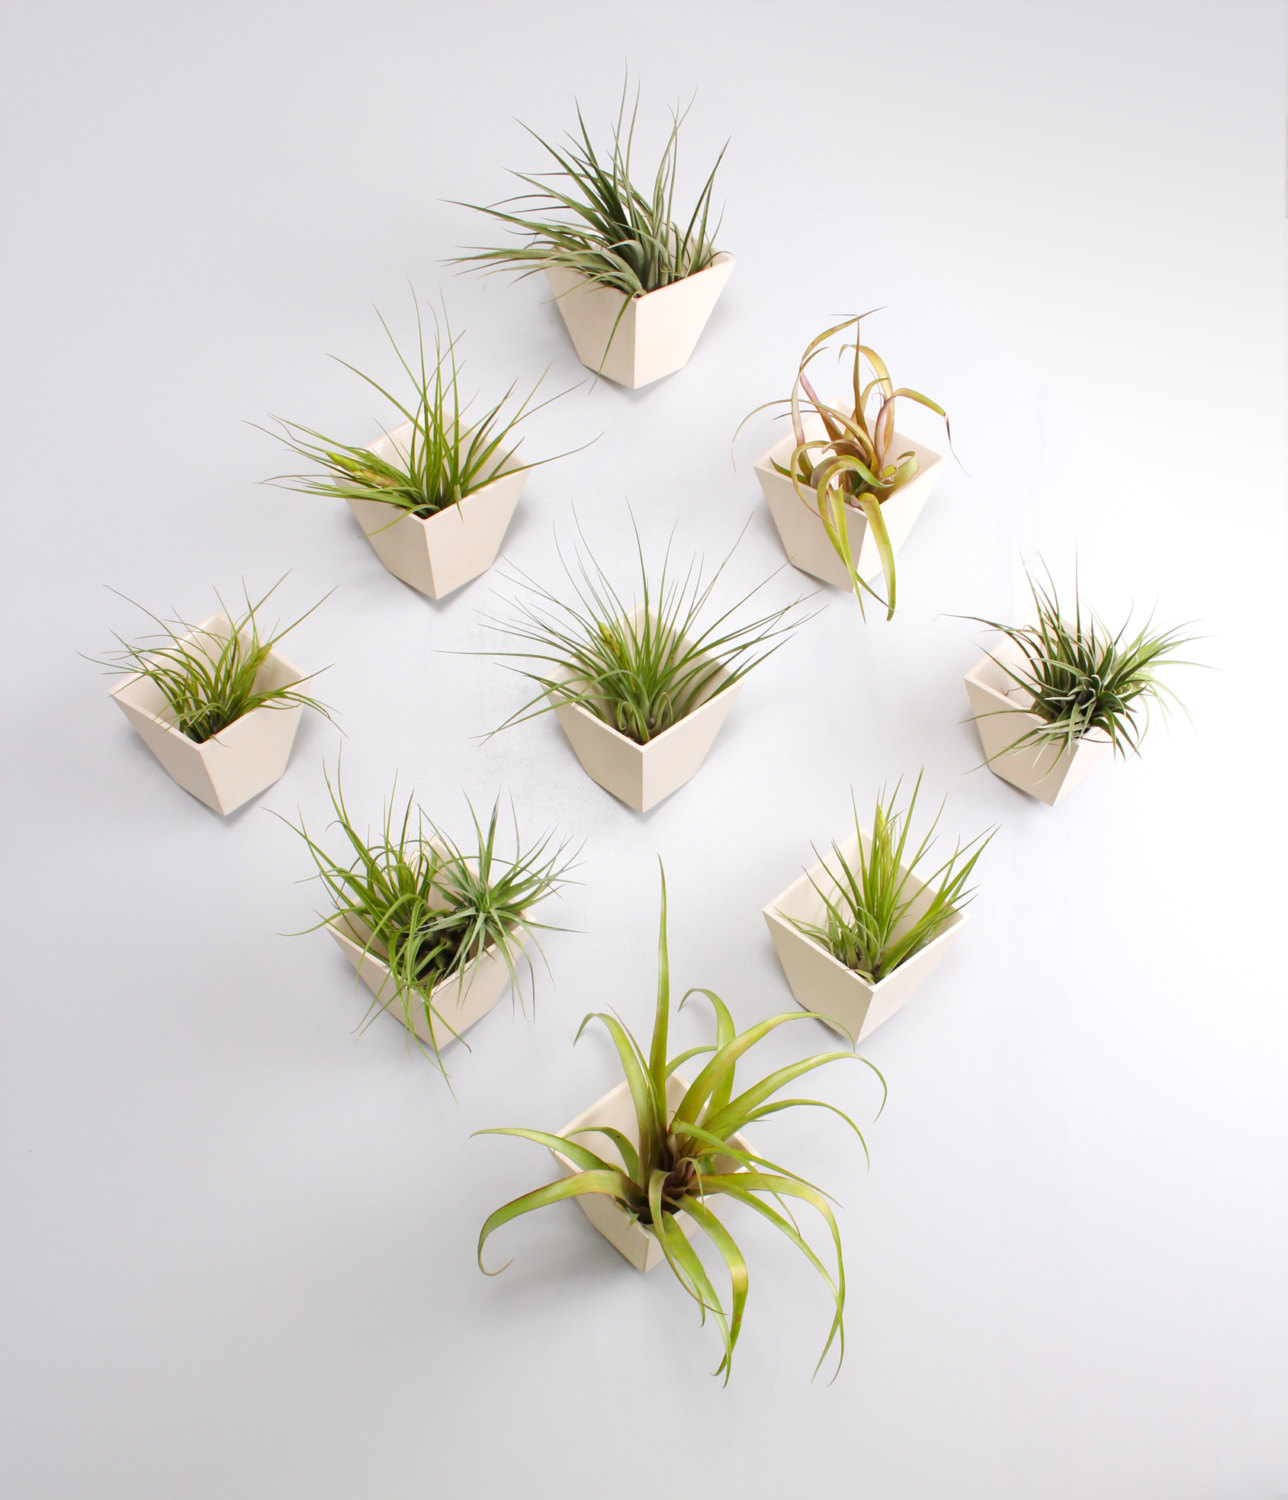 Modern Wall Planters: 50 Unique Pots & Planters You Can Buy Right Now